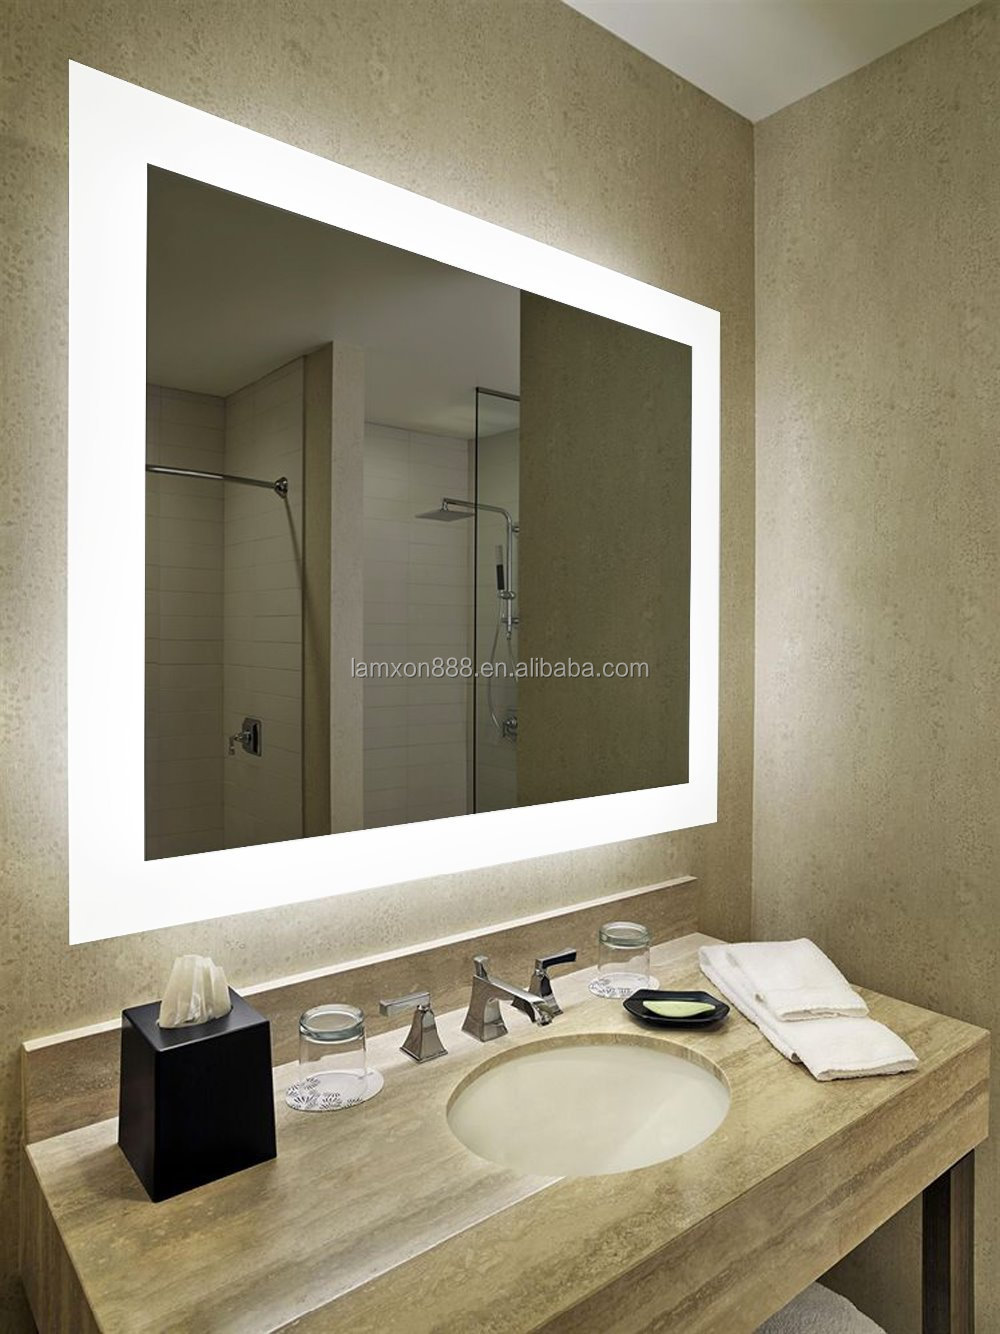 Hotel Bathroom Mirror With Led Lighted And Touch Sensor